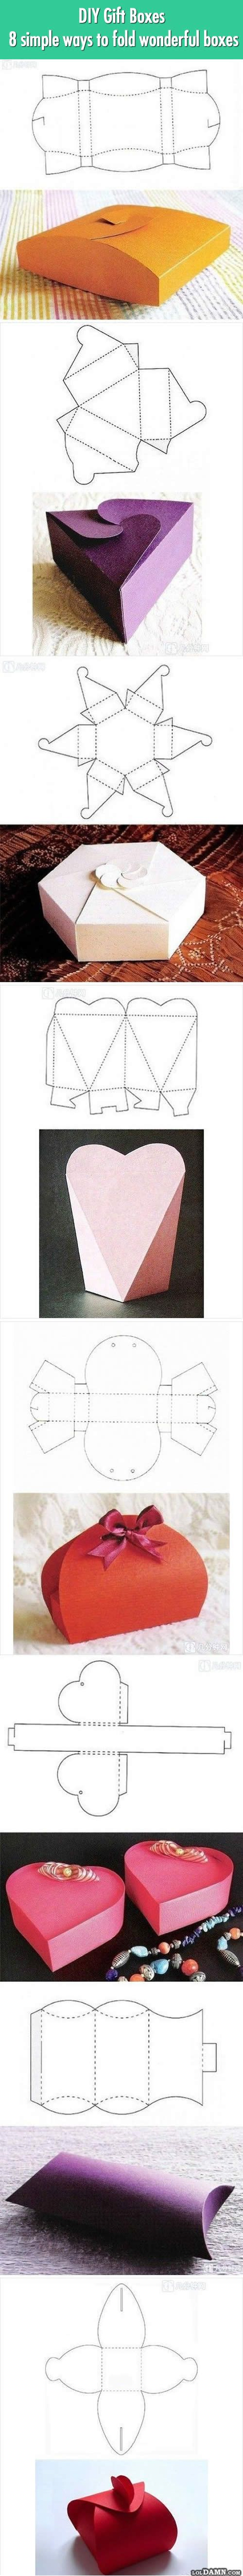 One picture will teach you how to fold 8 different gorgeous gift boxes.